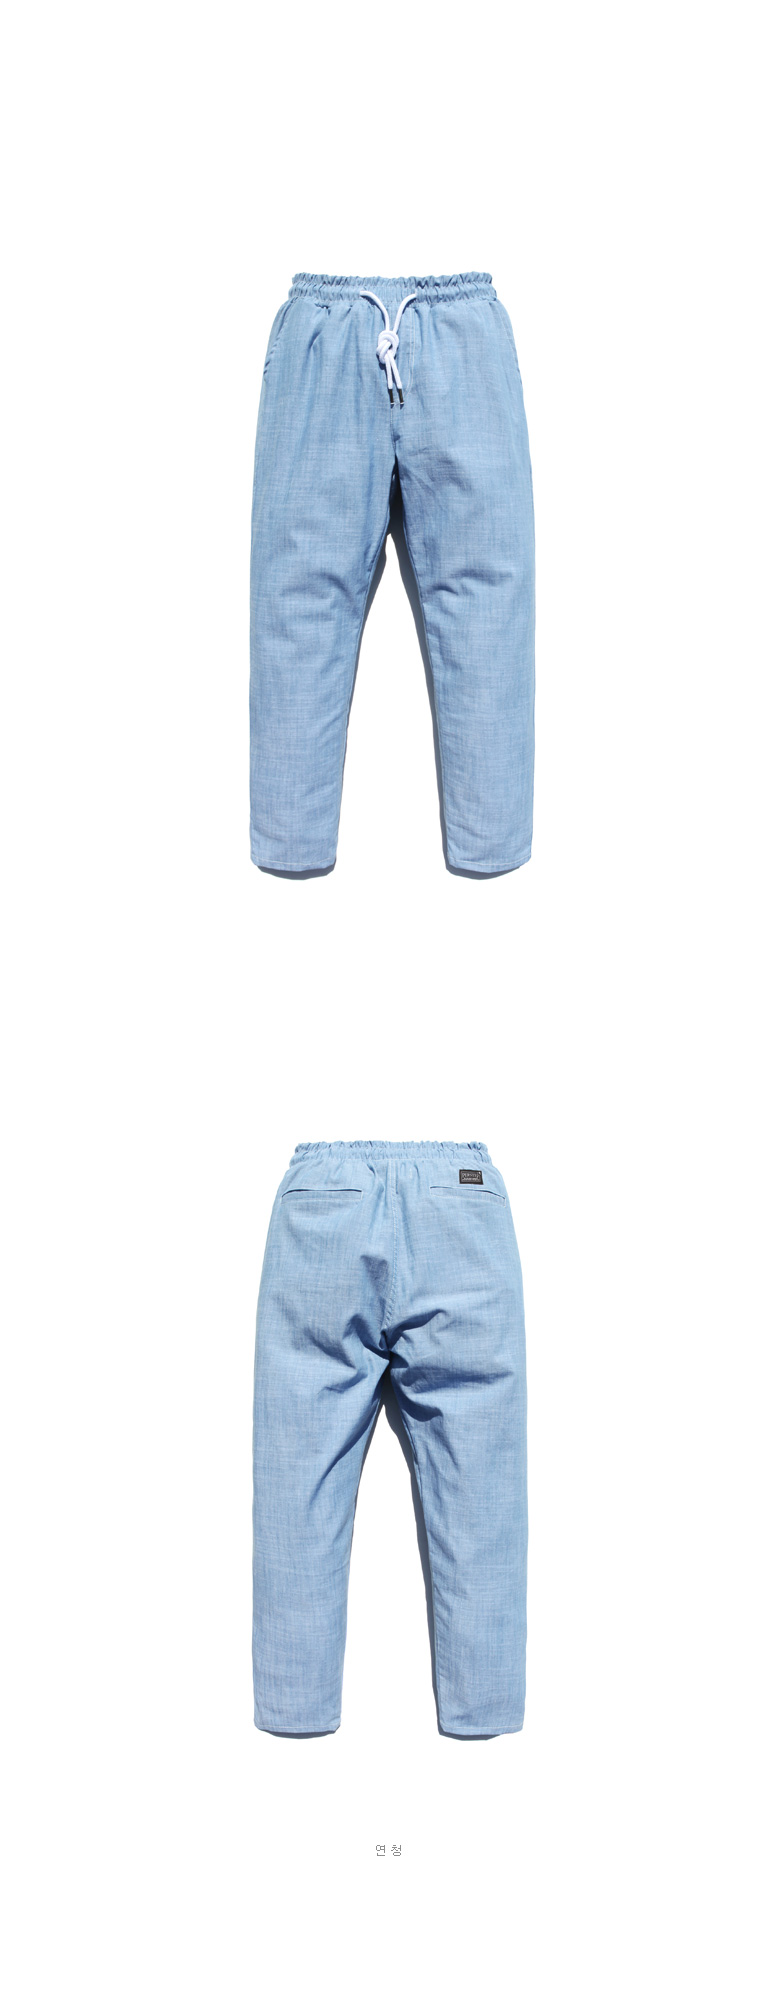 20170414_ps_scratch_long_pants_lb_sm_01.jpg